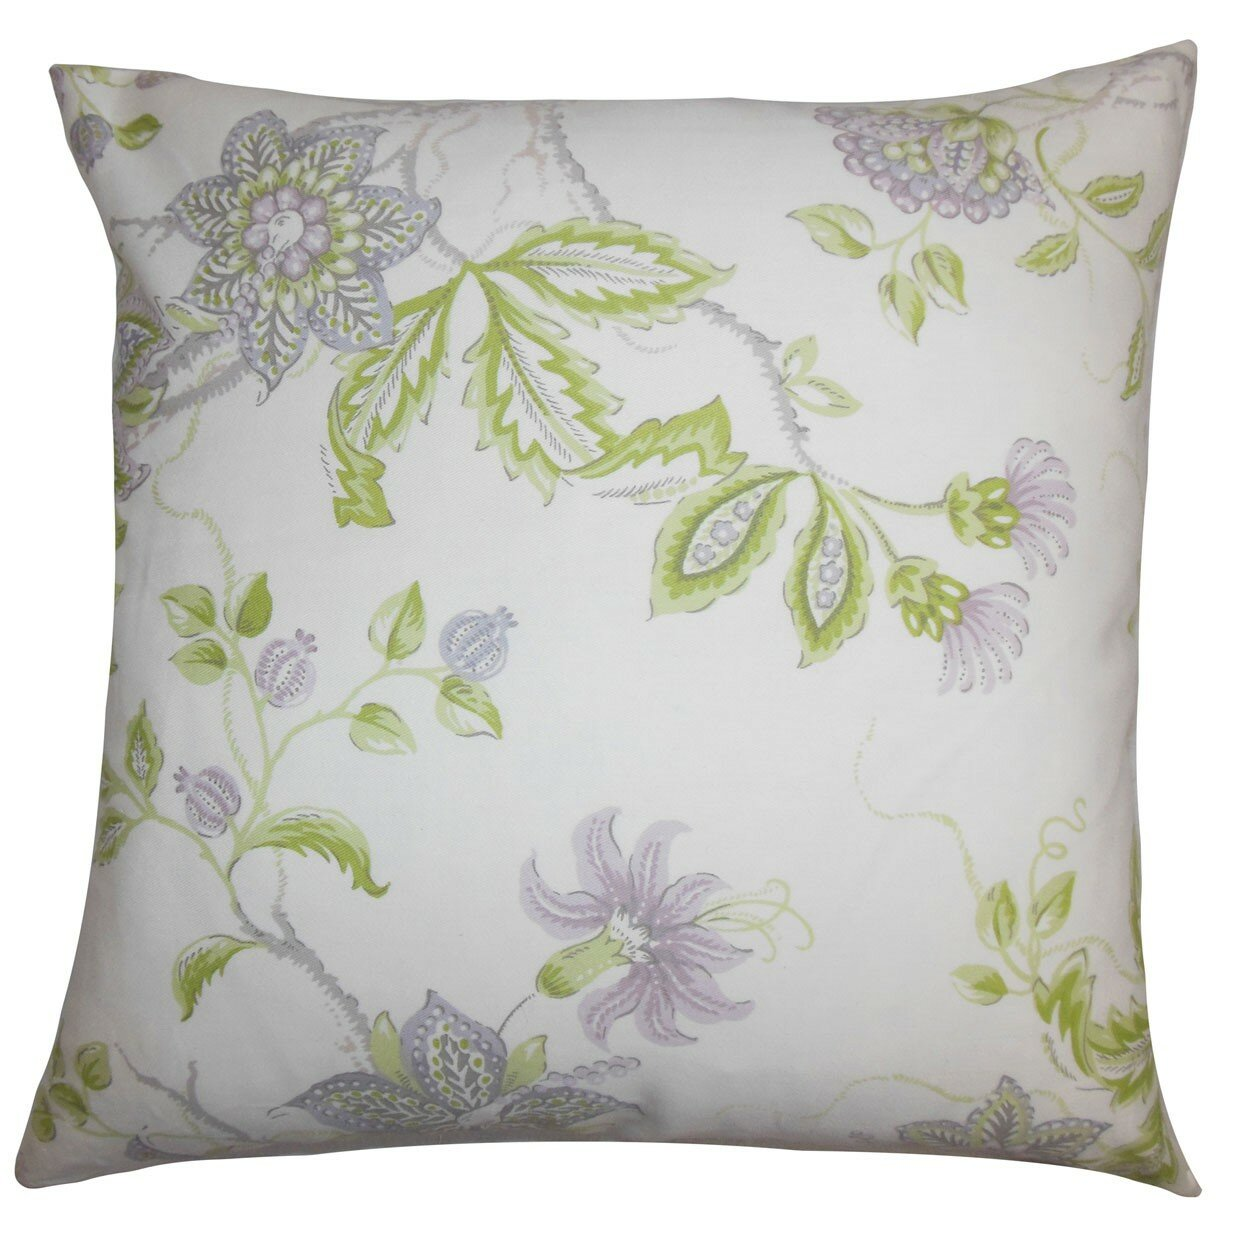 Throw Pillow Collections : The Pillow Collection Ululani Floral Throw Pillow Cover eBay